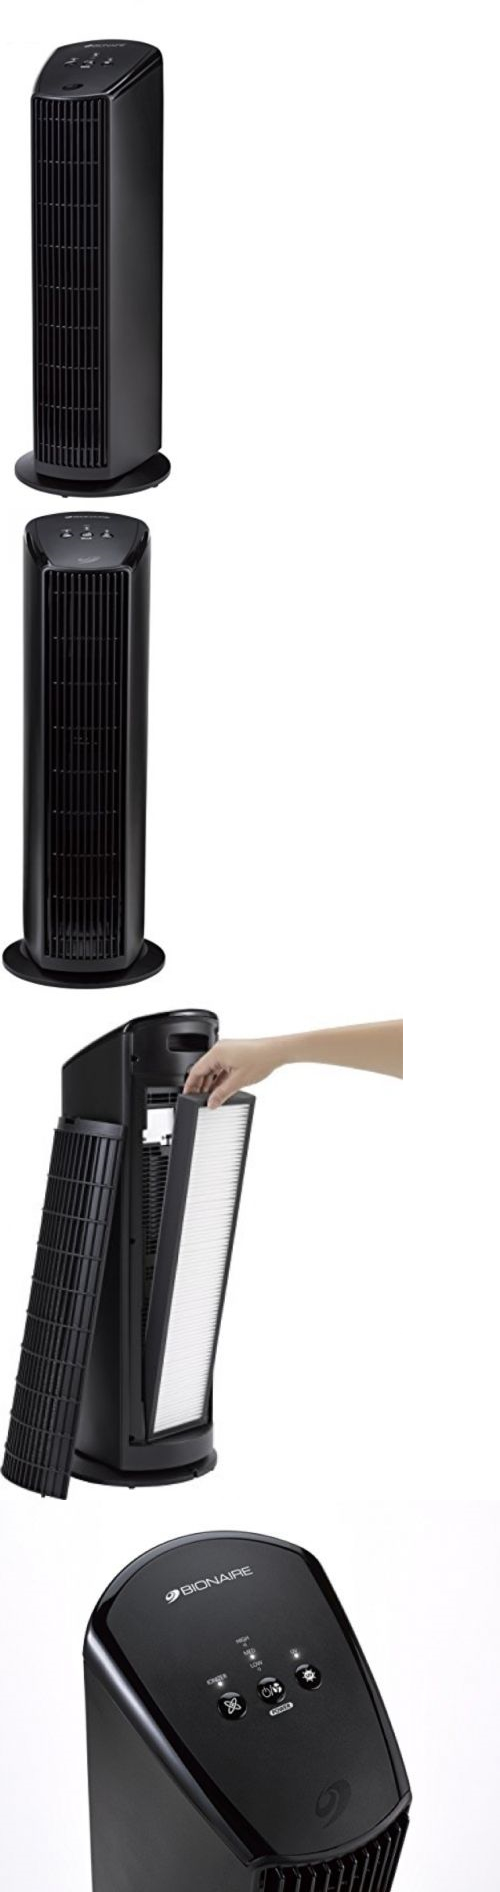 Air Purifiers 43510: Bionaire Permanent Filter Hepa Type Air Purifier With Germ-Fighting Uv, Bap536uv -> BUY IT NOW ONLY: $72.33 on eBay!